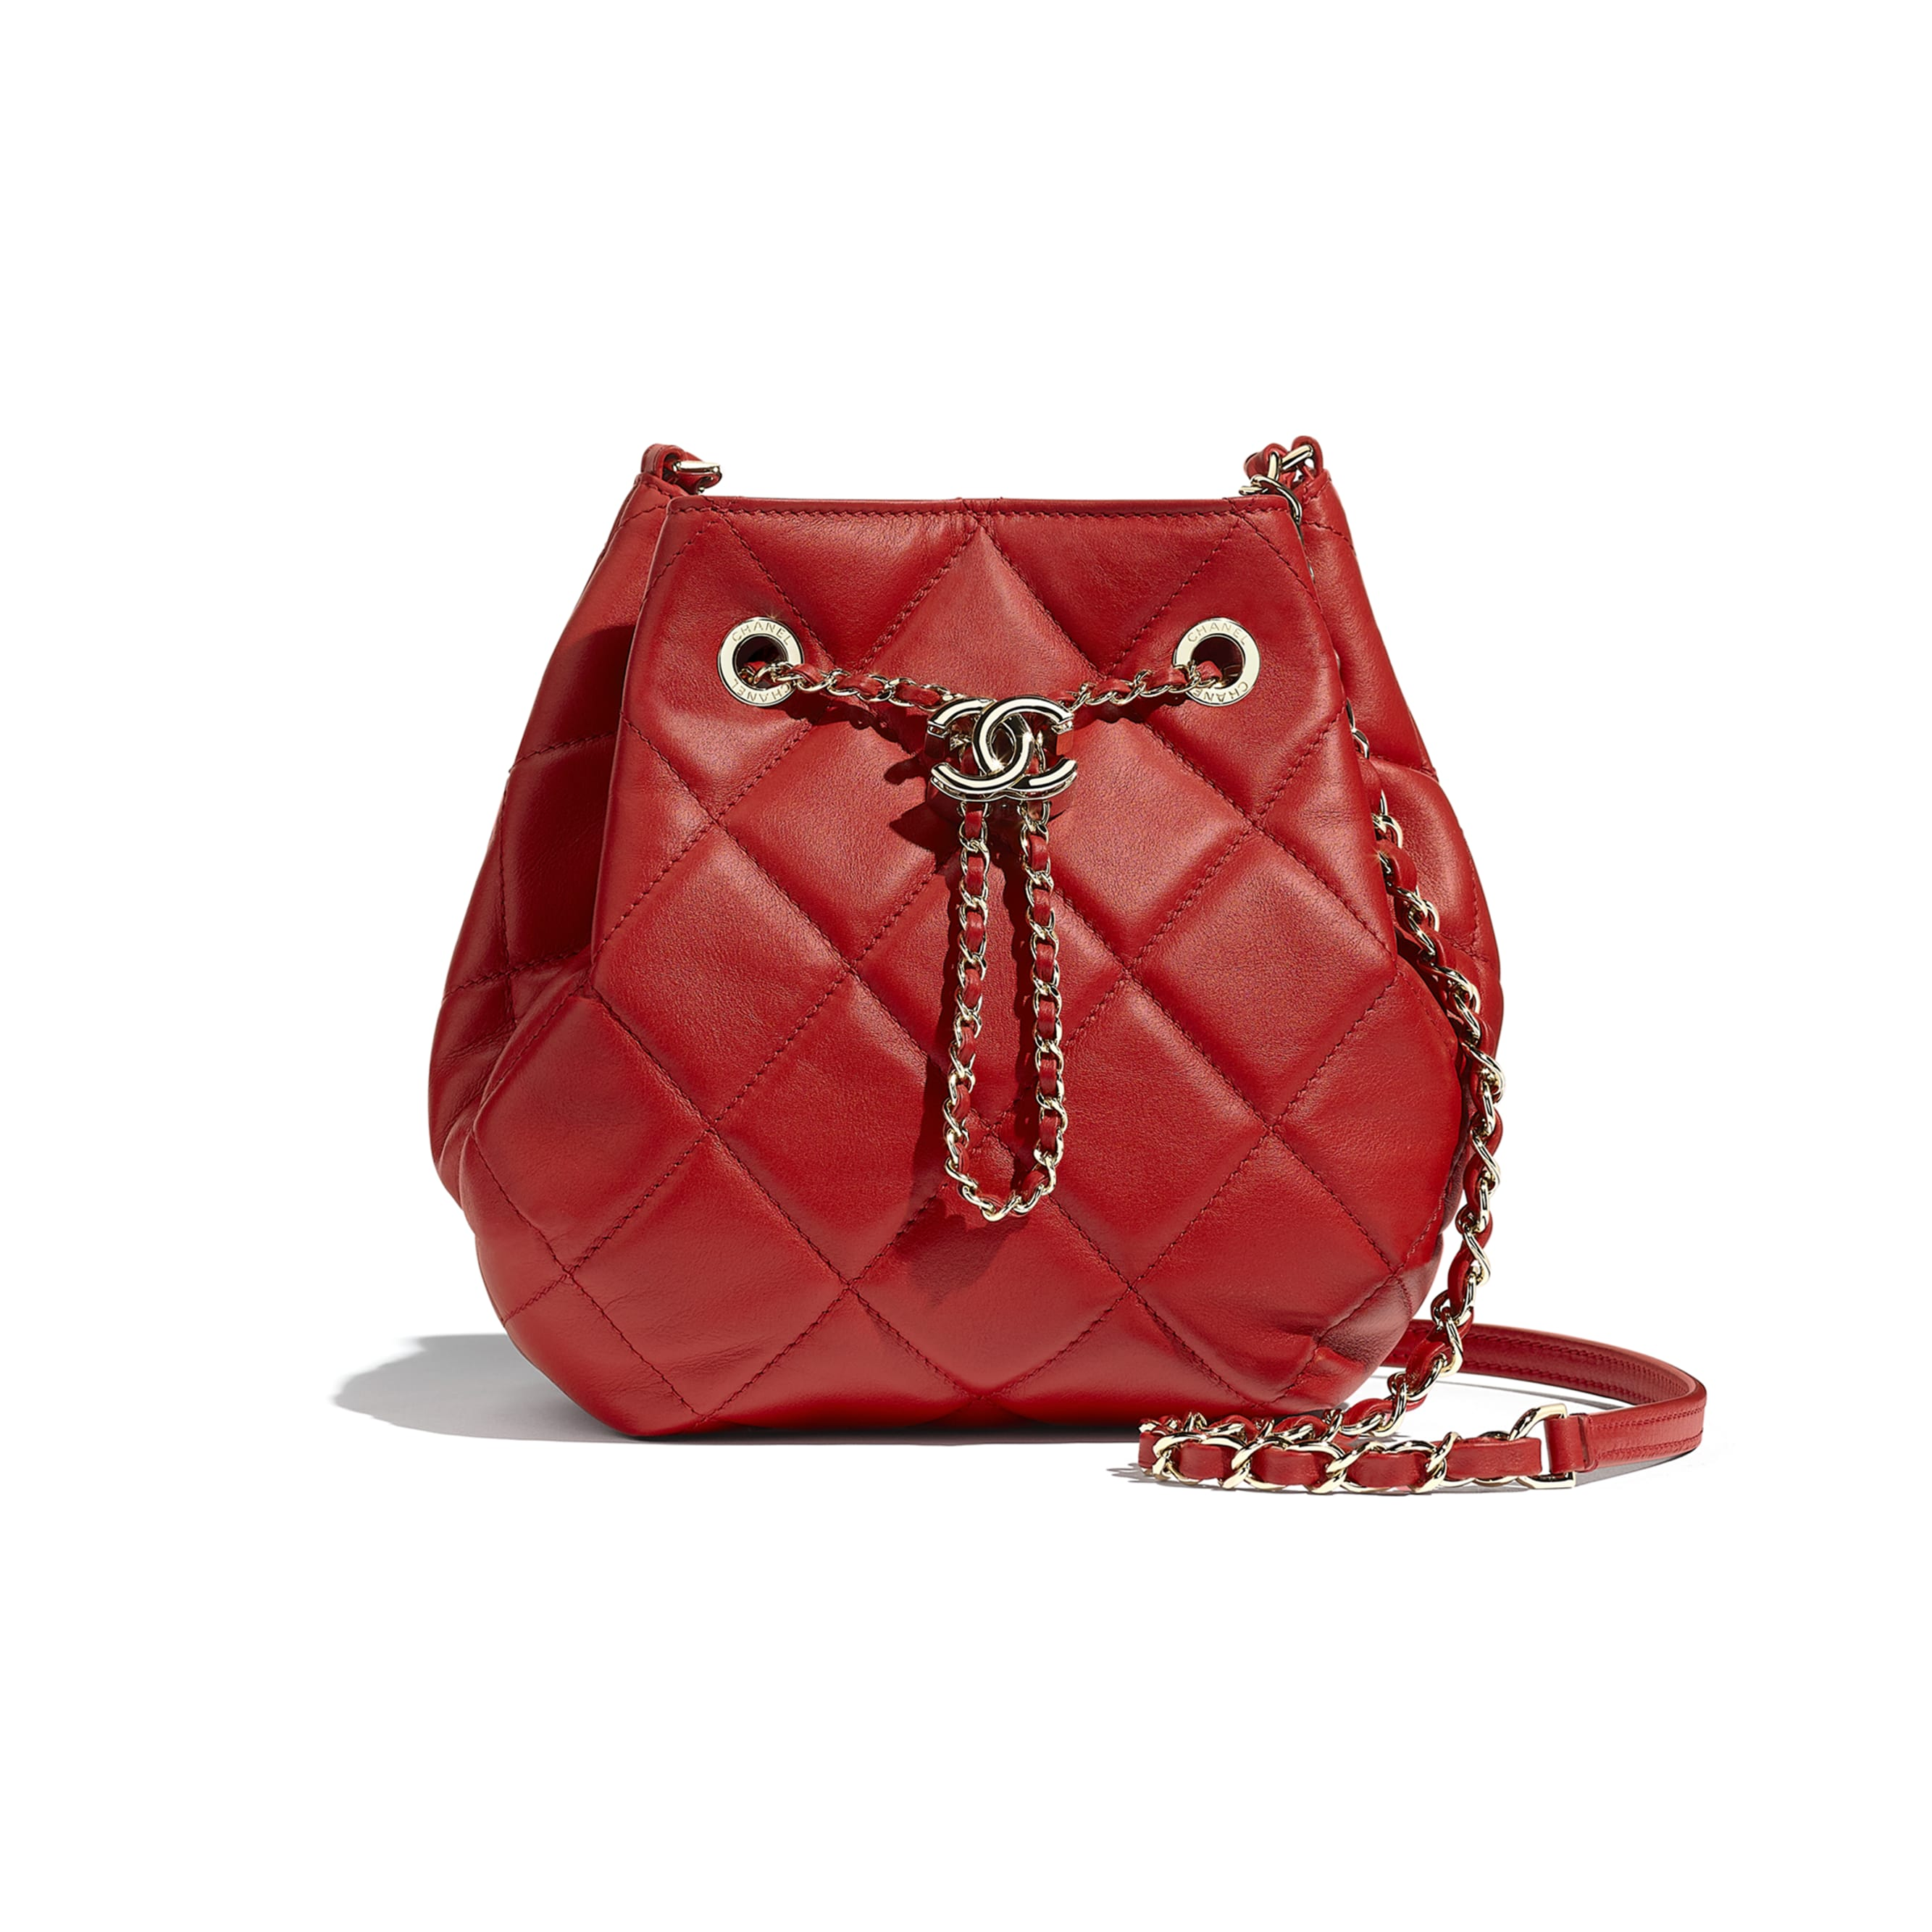 Drawstring Bag - Red - Lambskin & Gold-Tone Metal - CHANEL - Default view - see standard sized version